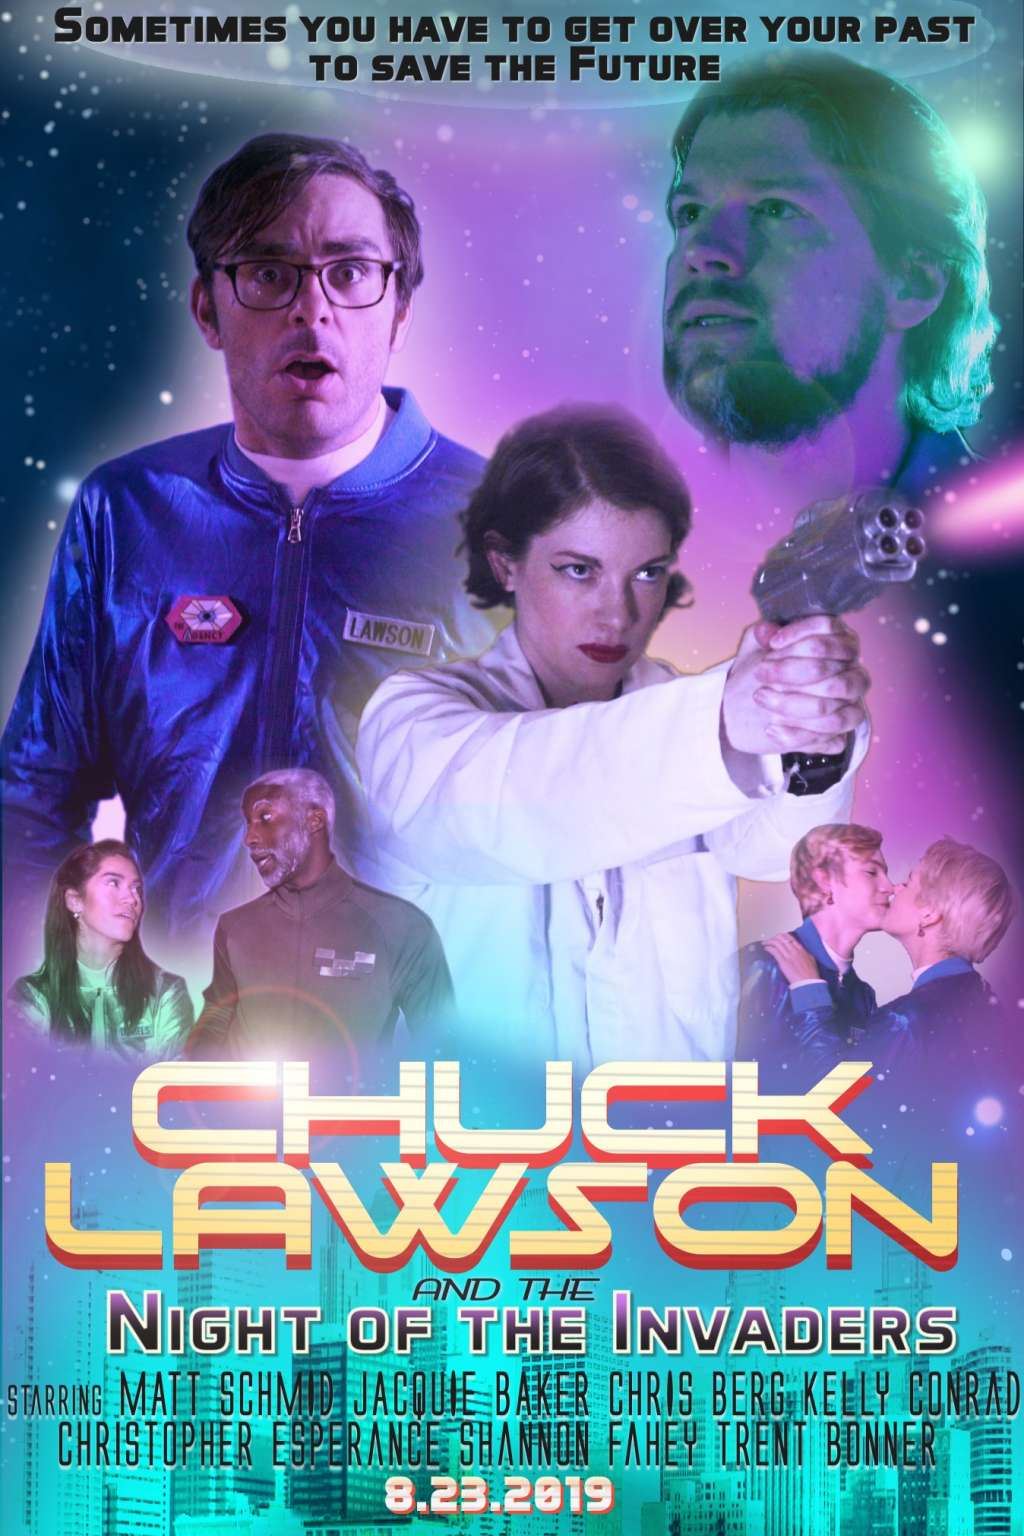 Chuck Lawson and the Night of the Invaders kapak